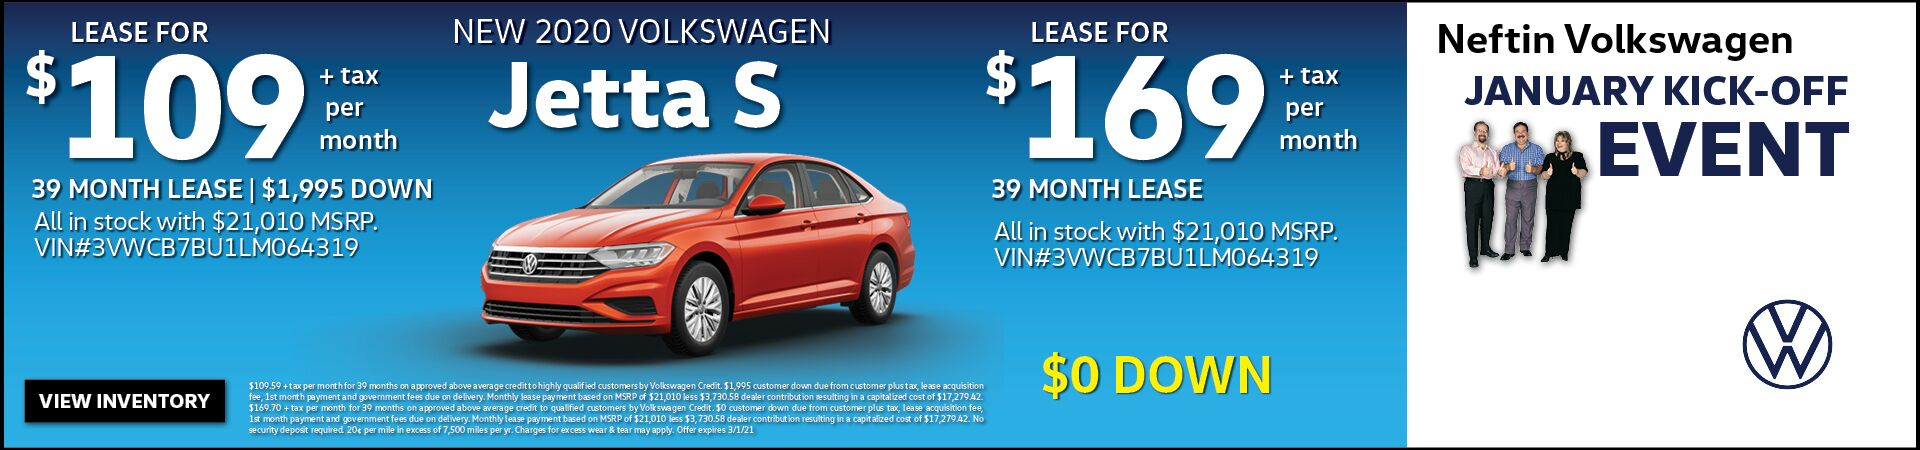 January '21 Jetta S Lease Offer